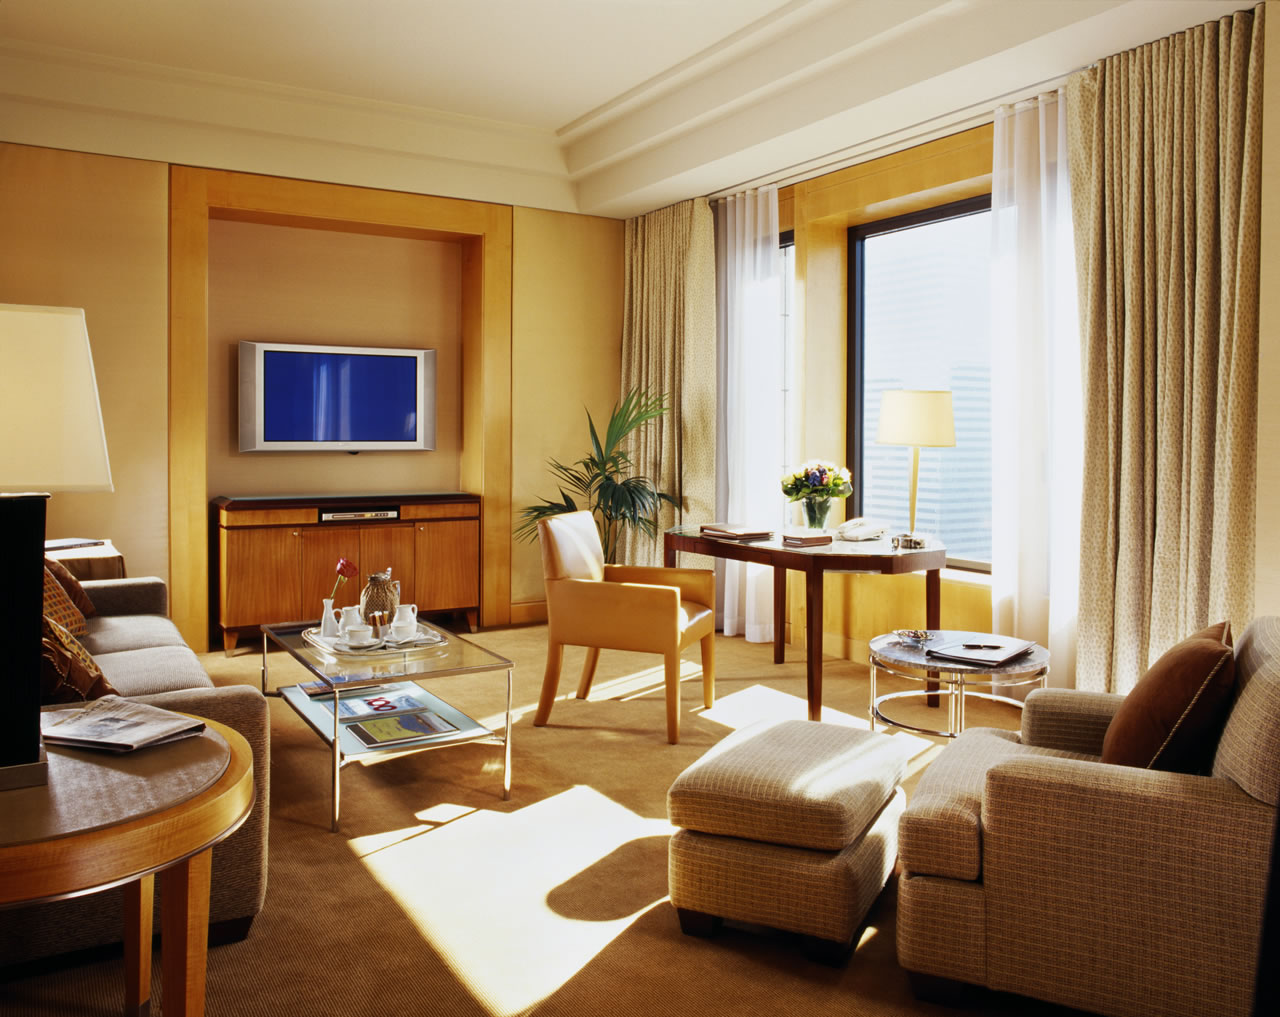 World 39 s most expensive hotel rooms ealuxe com for Most expensive hotel in nyc